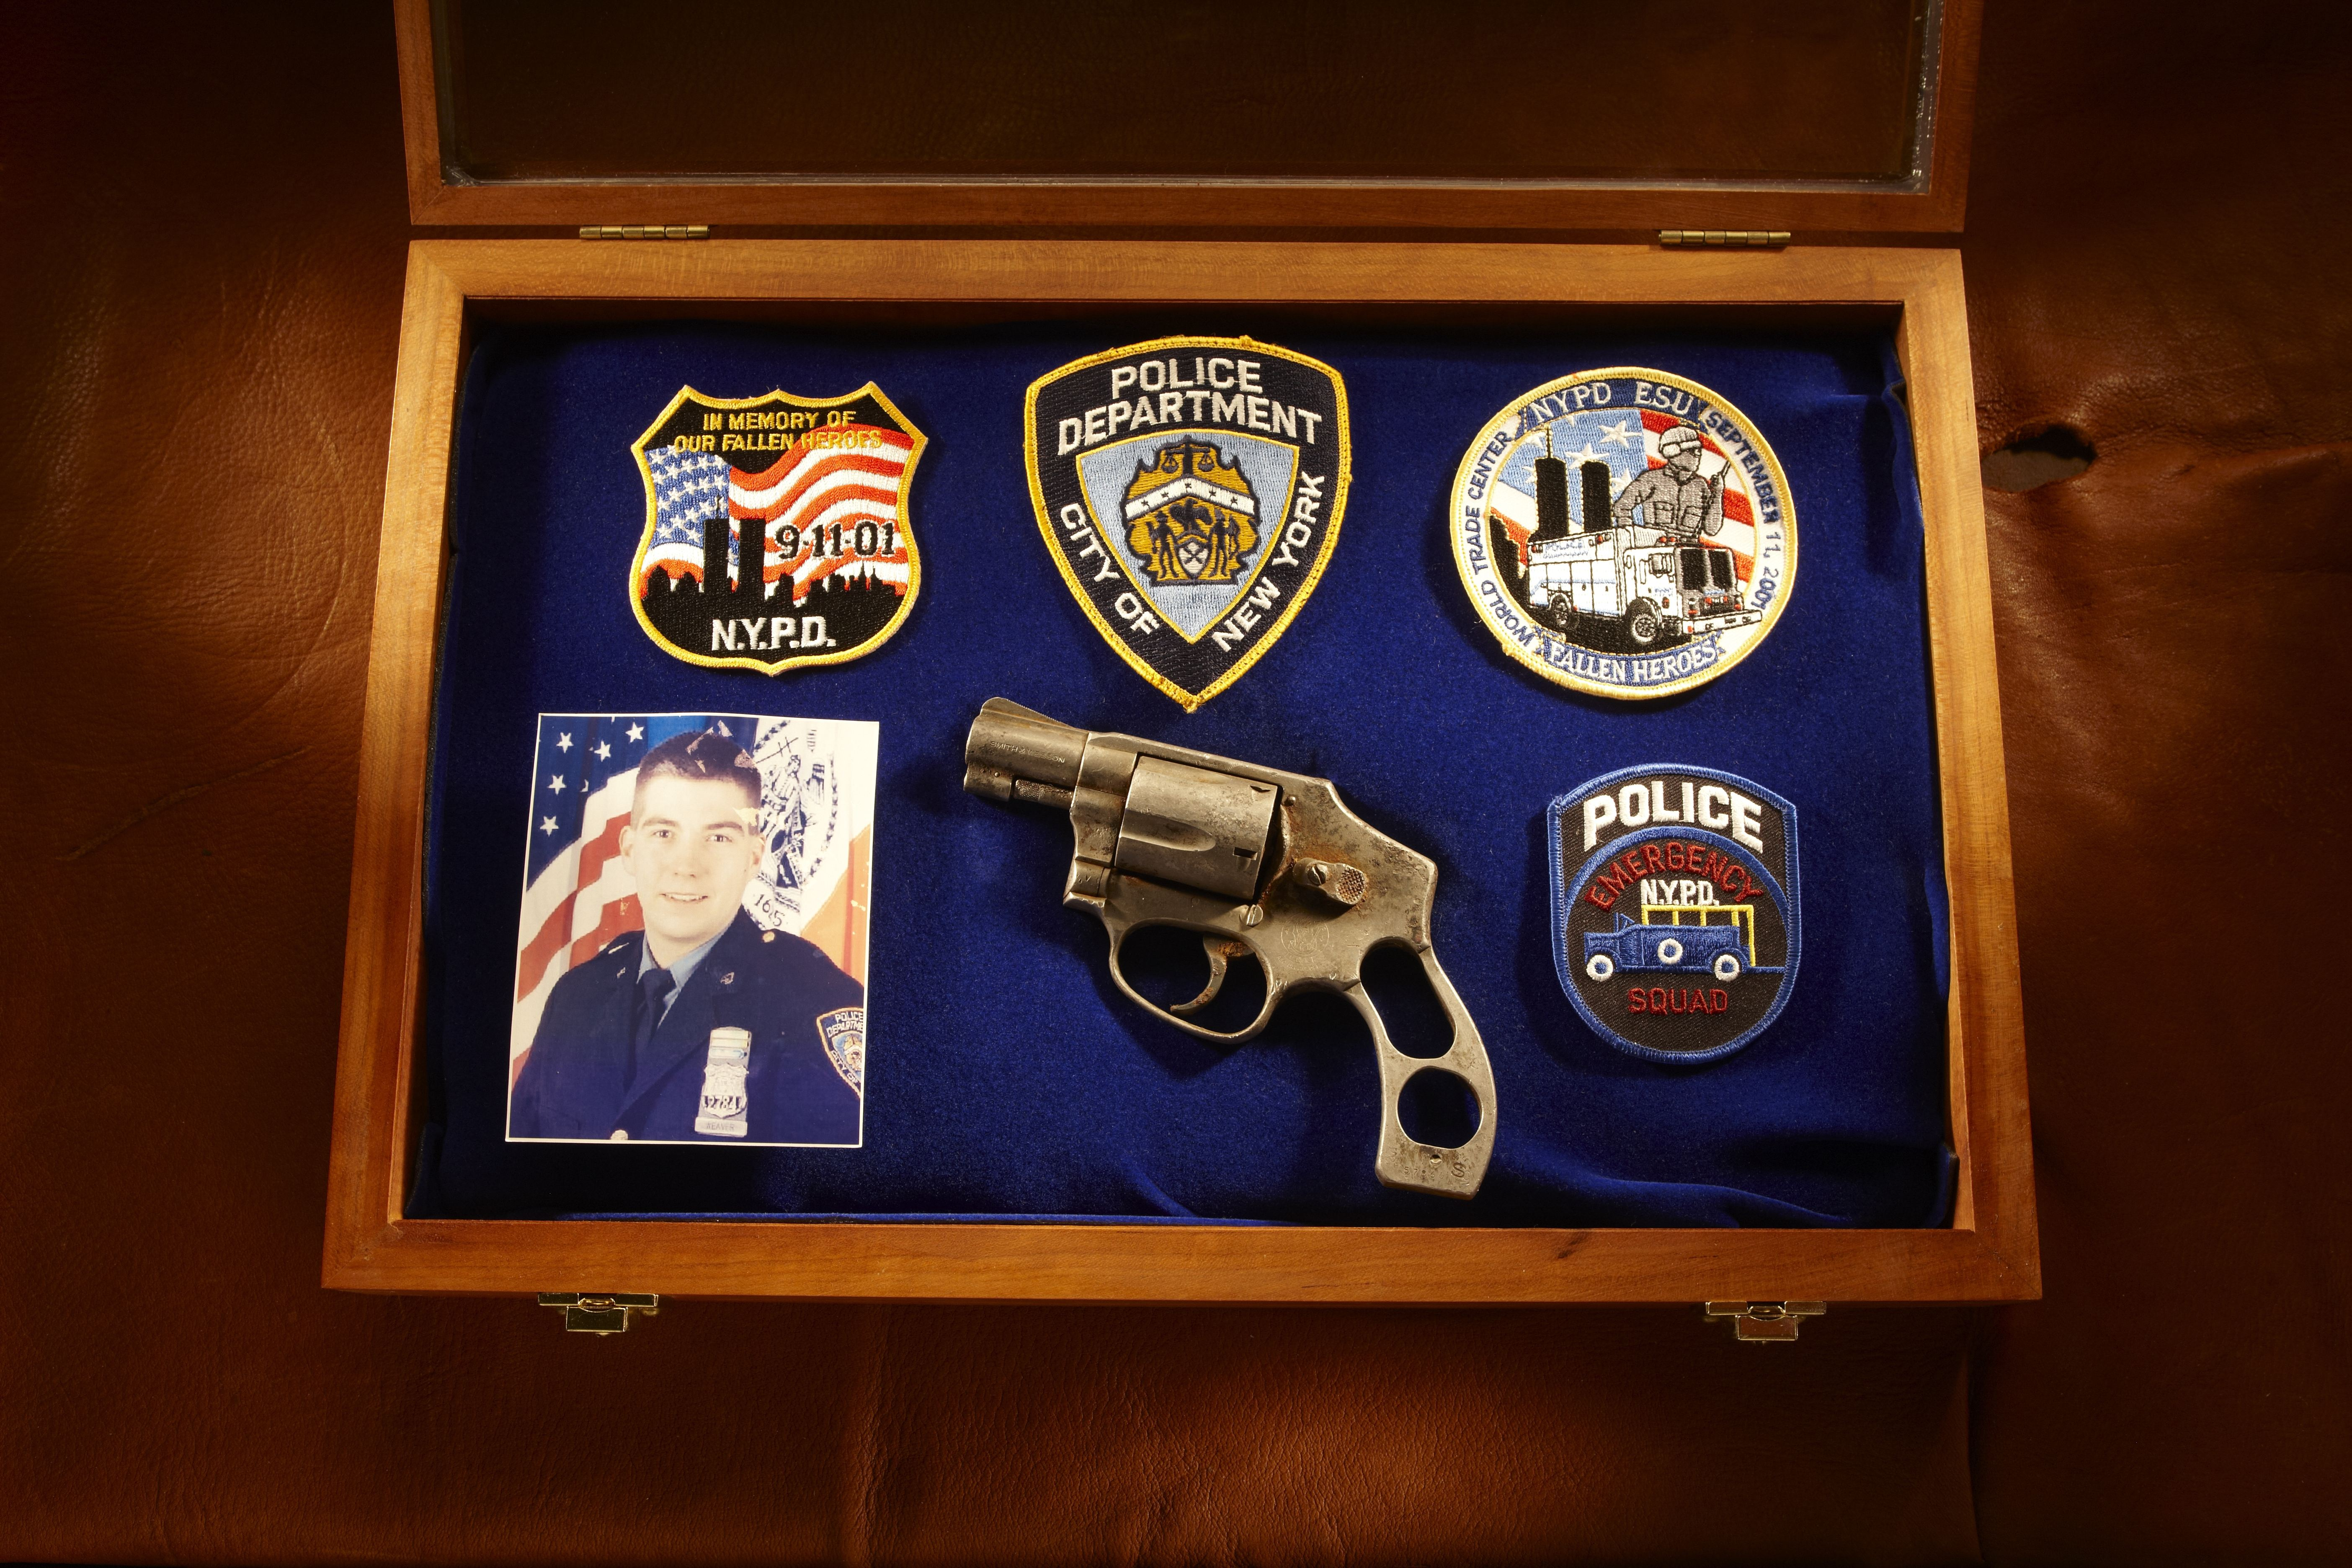 9/11 Revolver - Officer Walter Weaver